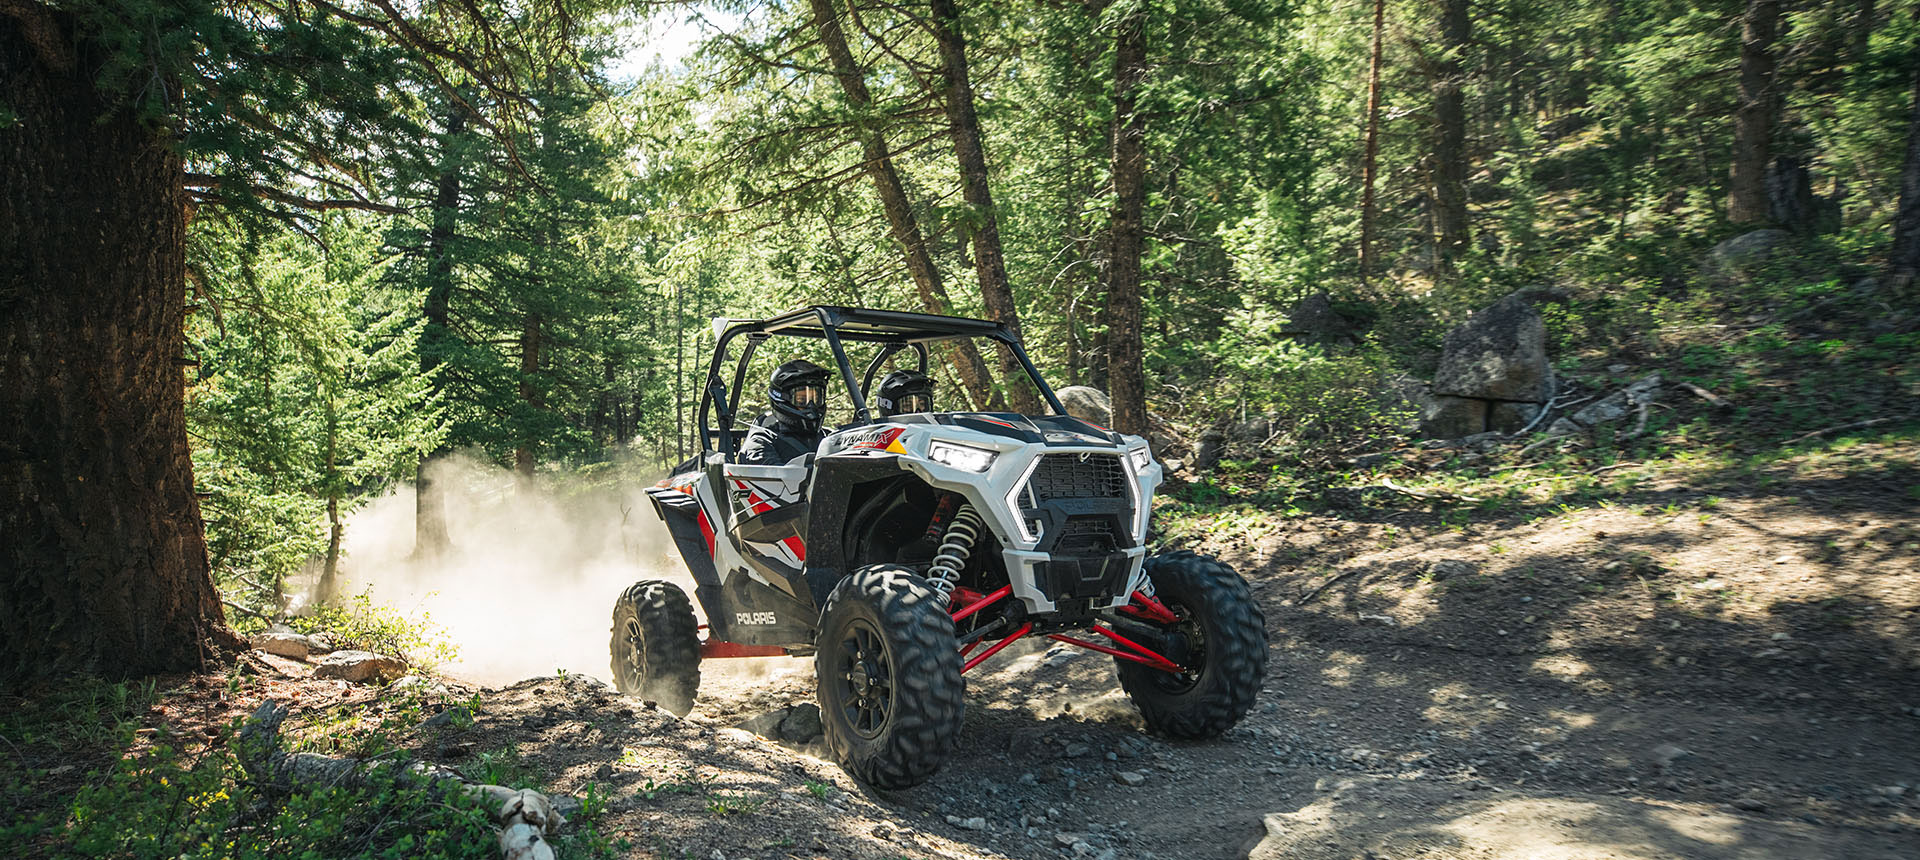 2019 Polaris RZR XP 1000 in Statesville, North Carolina - Photo 9